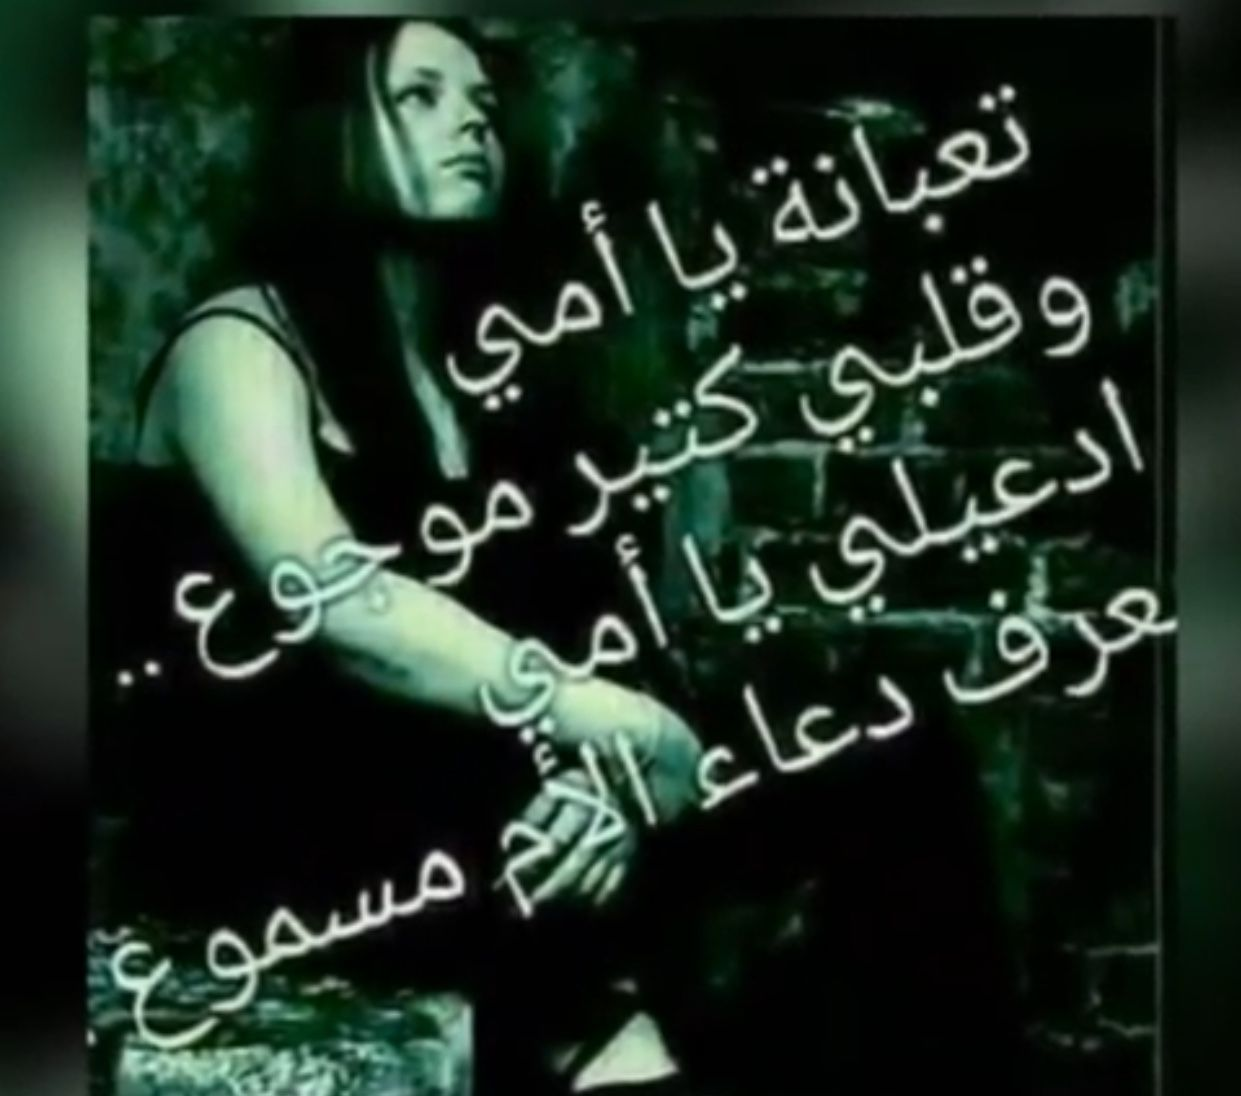 Pin By Cutestar On My Quotes Me Quotes Arabic Quotes Quotes